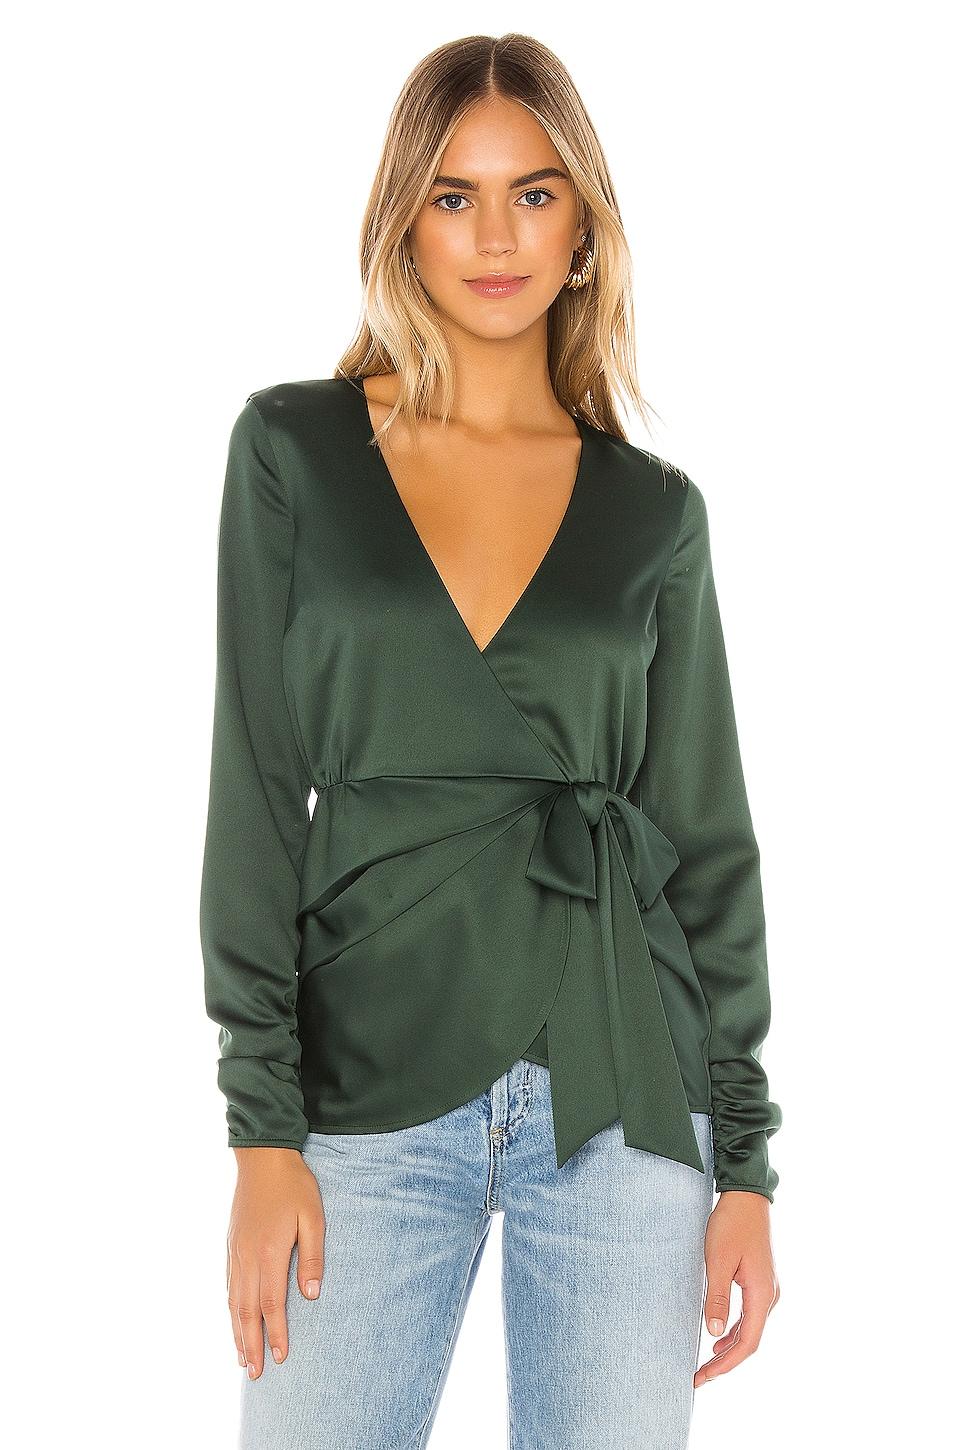 House of Harlow 1960 X REVOLVE Daya Blouse in Emerald